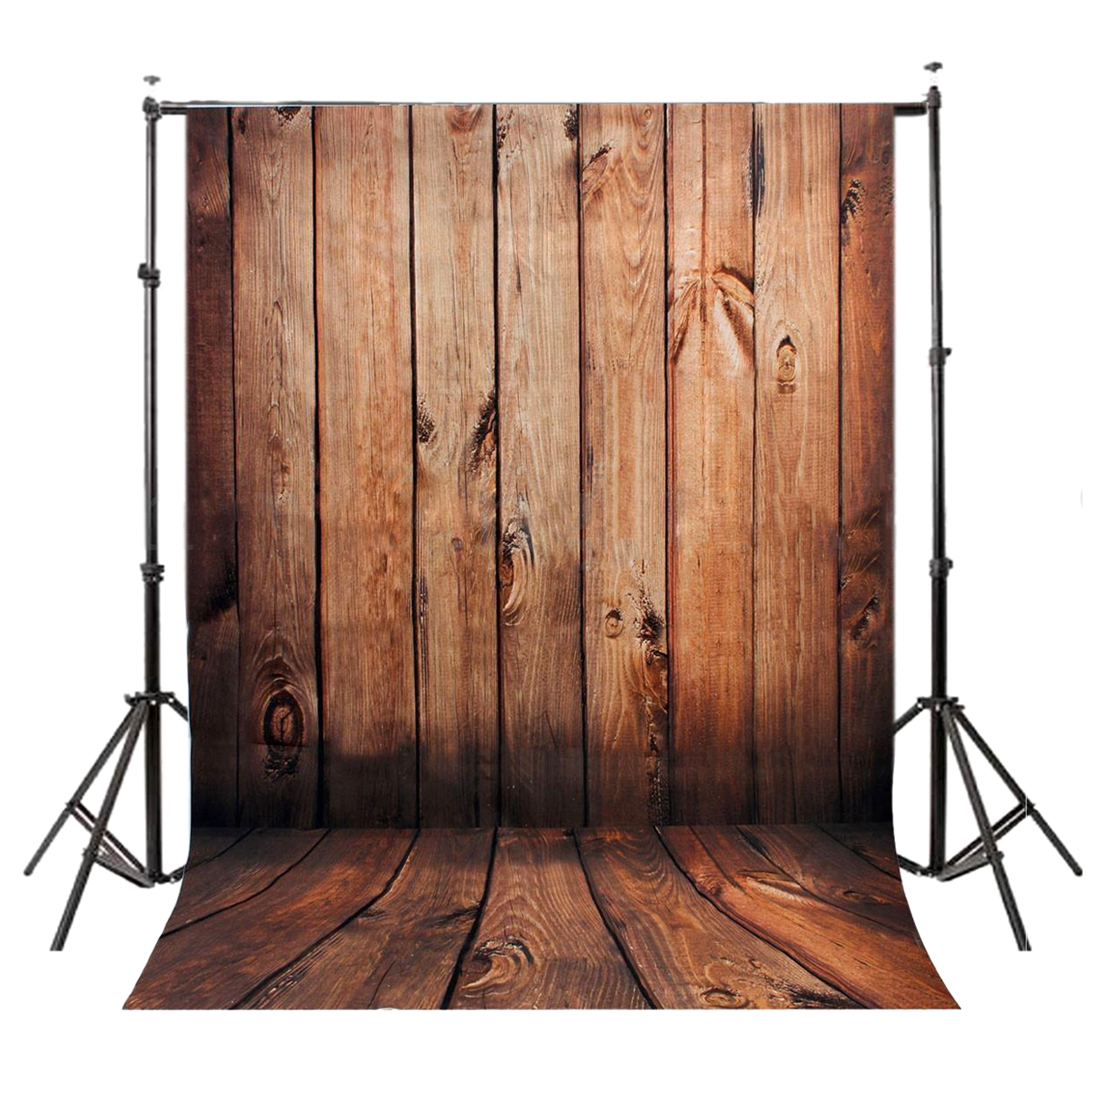 5x7FT Vinyl Photography Backdrop Photo Background, Brown wood wall floor 10ft 20ft romantic wedding backdrop f 894 fabric background idea wood floor digital photography backdrop for picture taking